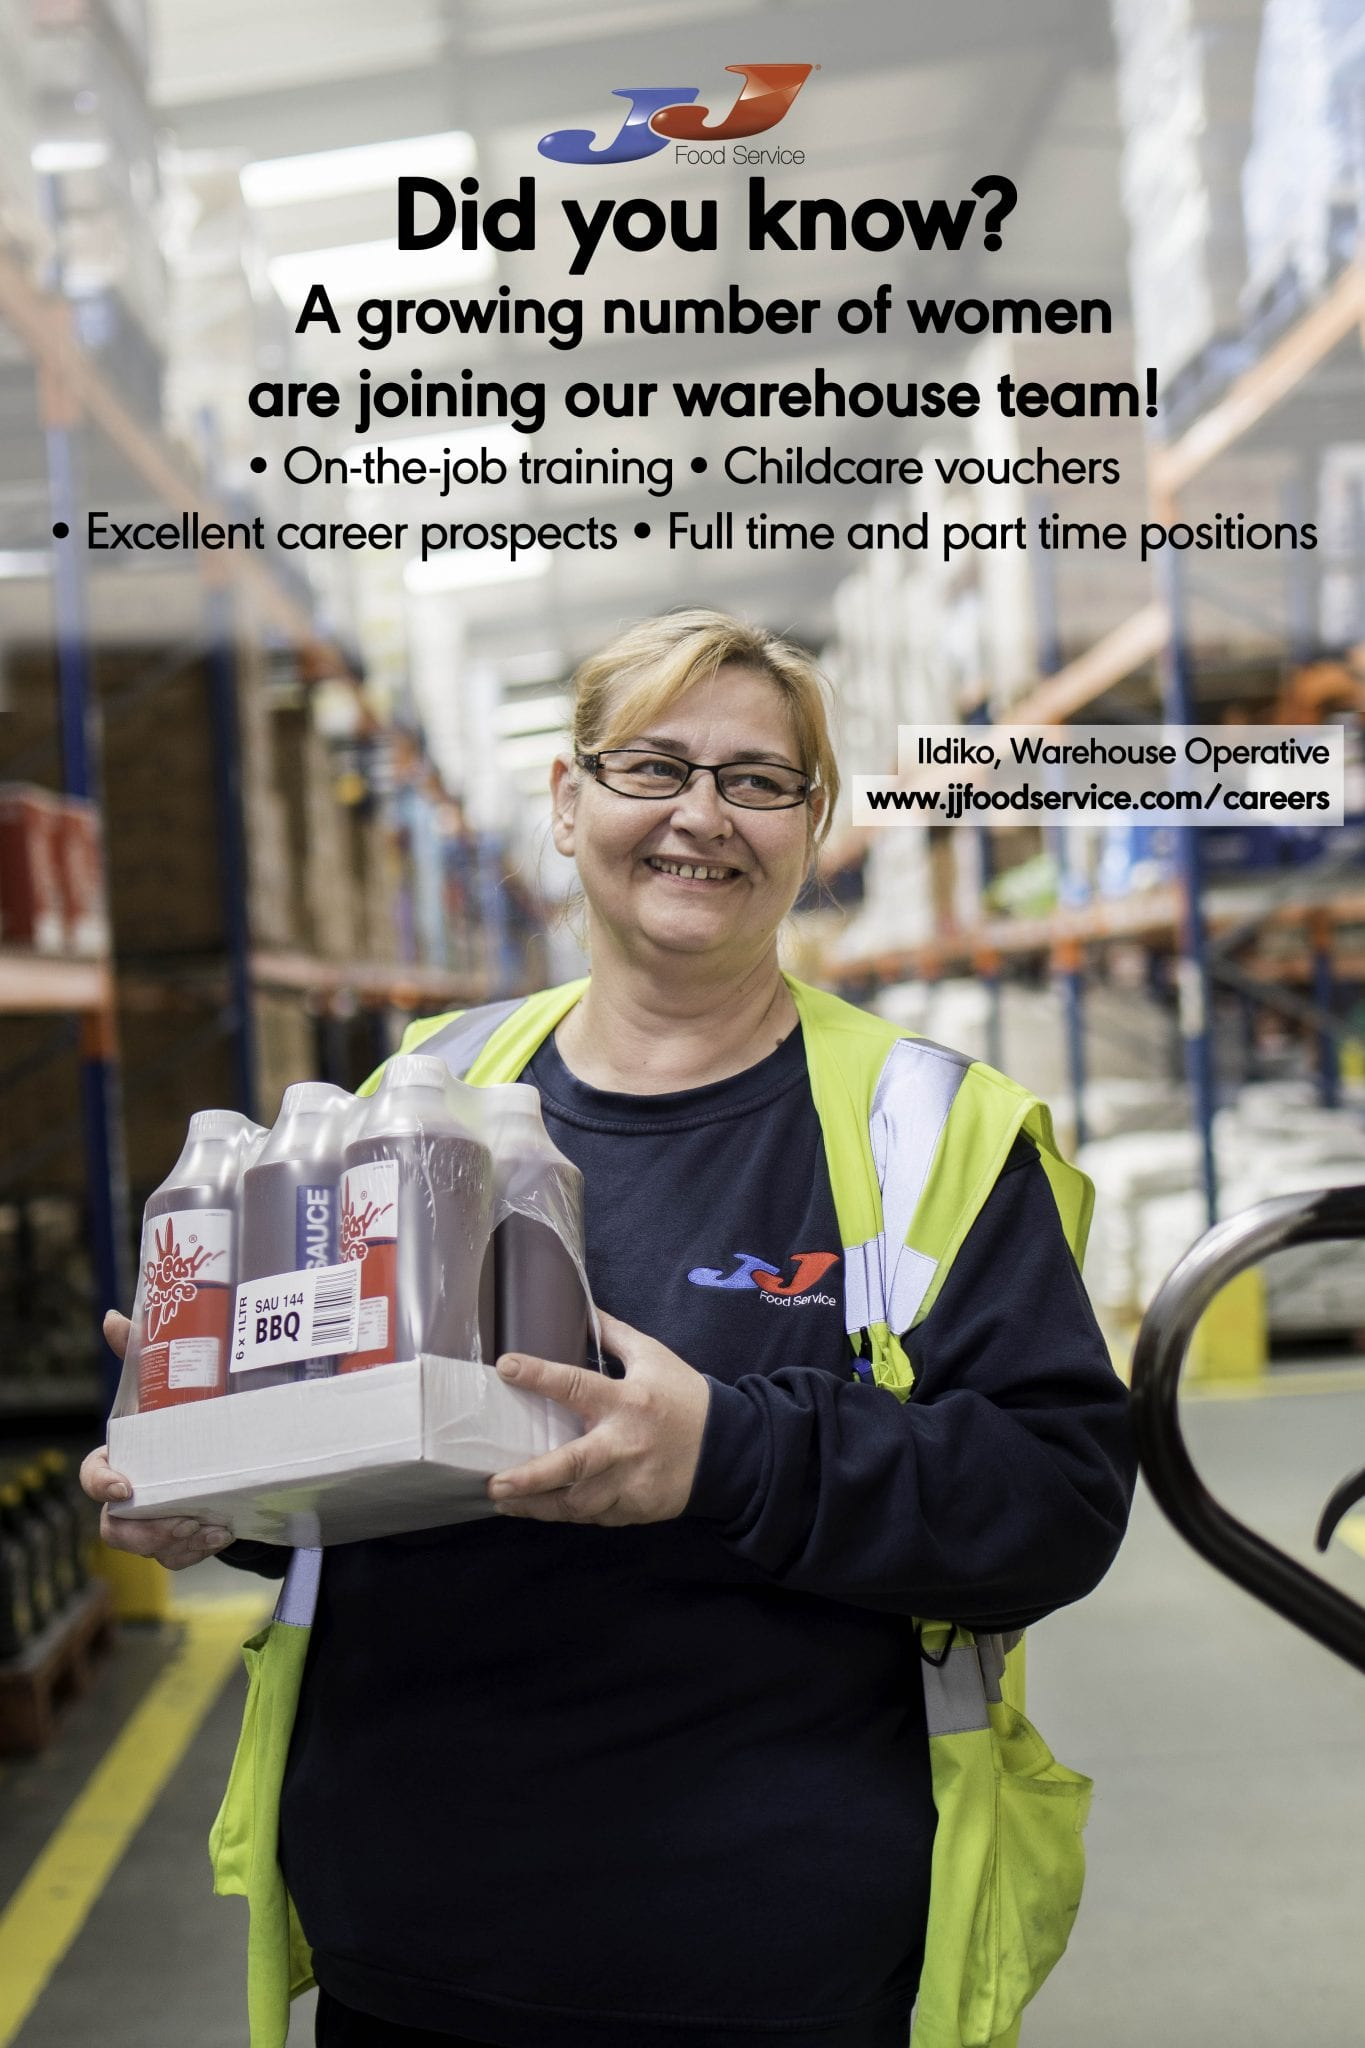 JJ Food Service is promoting warehouse jobs to women to increase its talent pool